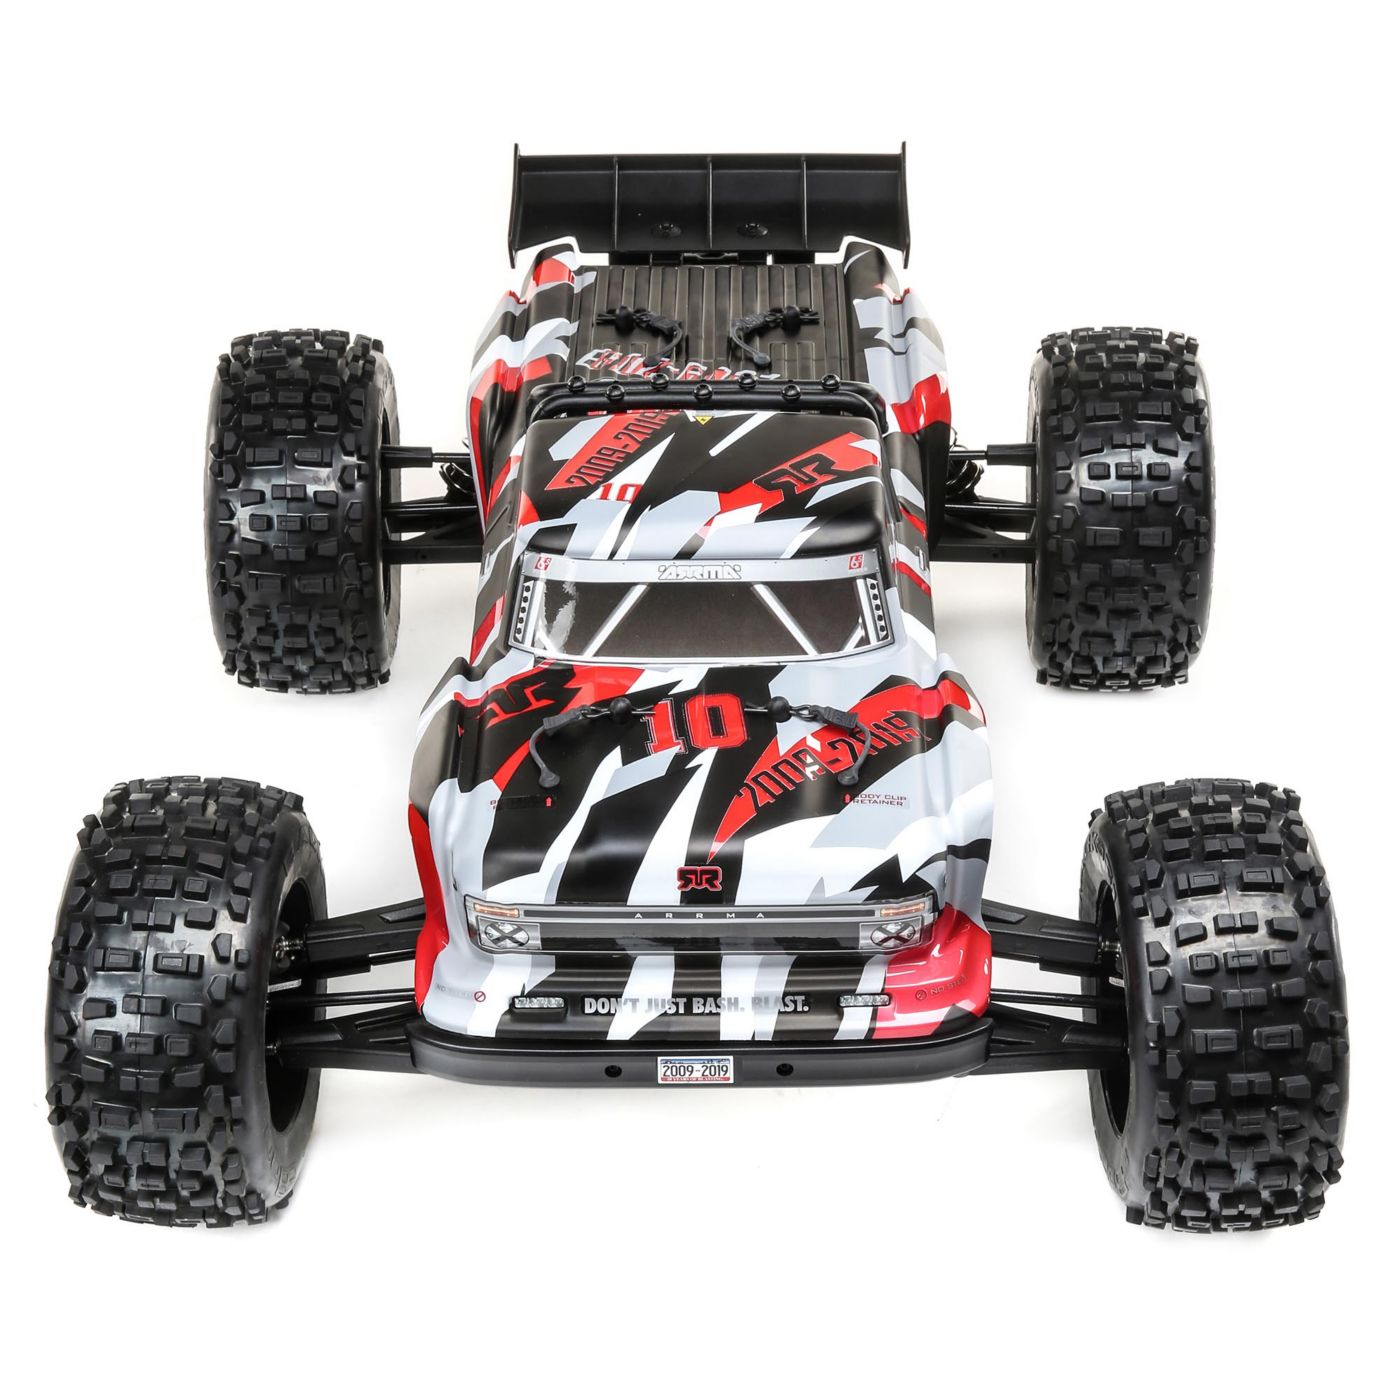 ARRMA Outcast 6S 10th Anniversary Edition - Front